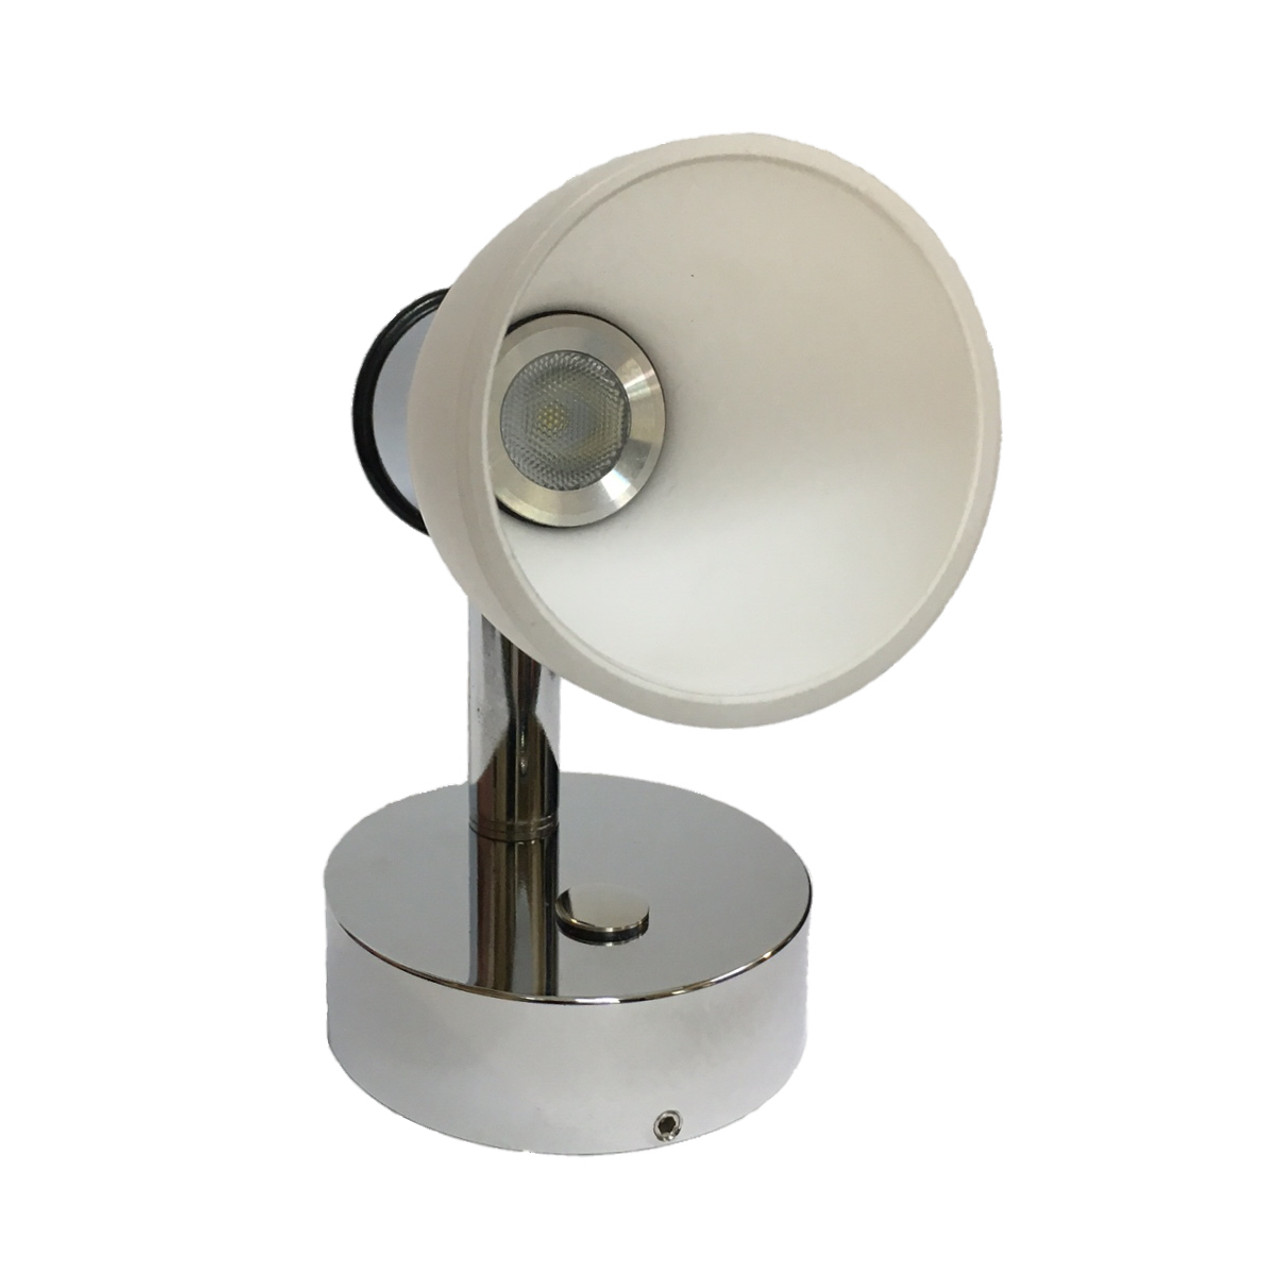 Reading light for yachts